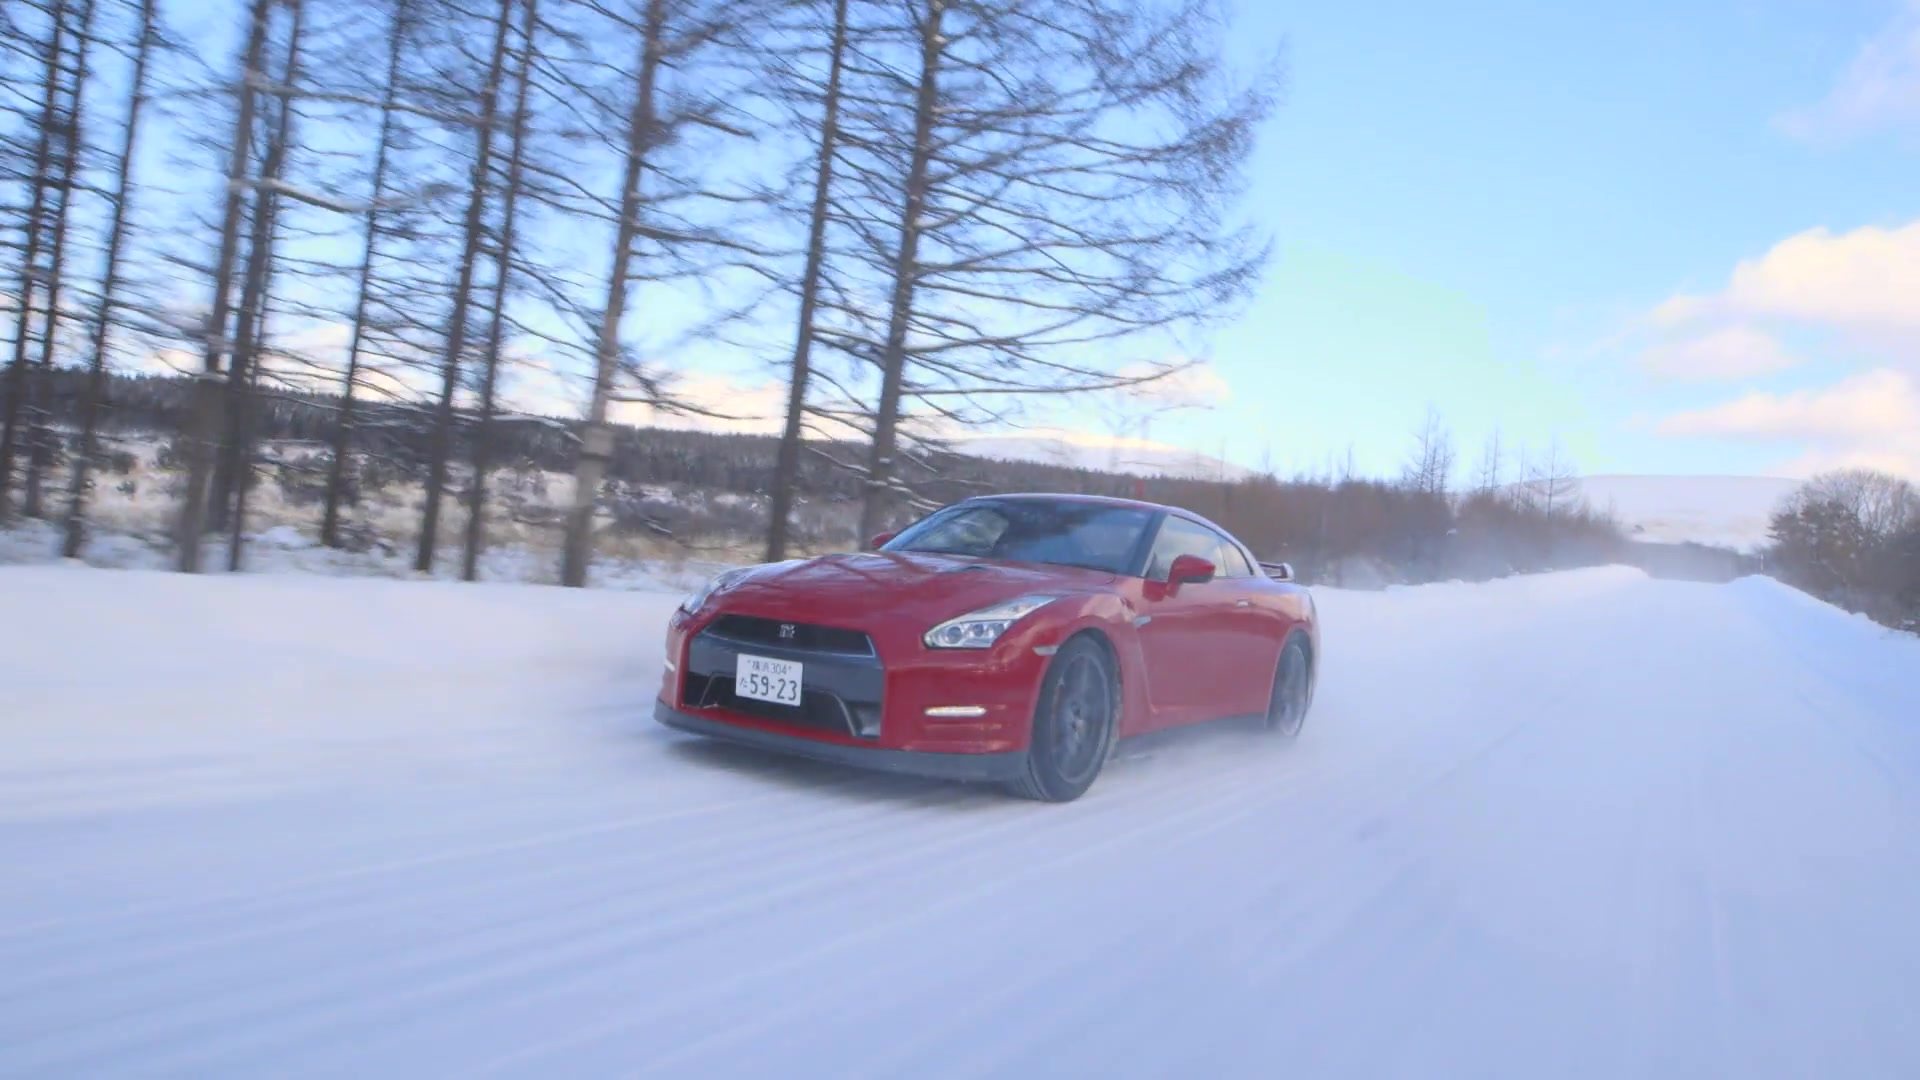 Winter WonderRoad: Taking on Snowy Japan with Nissan